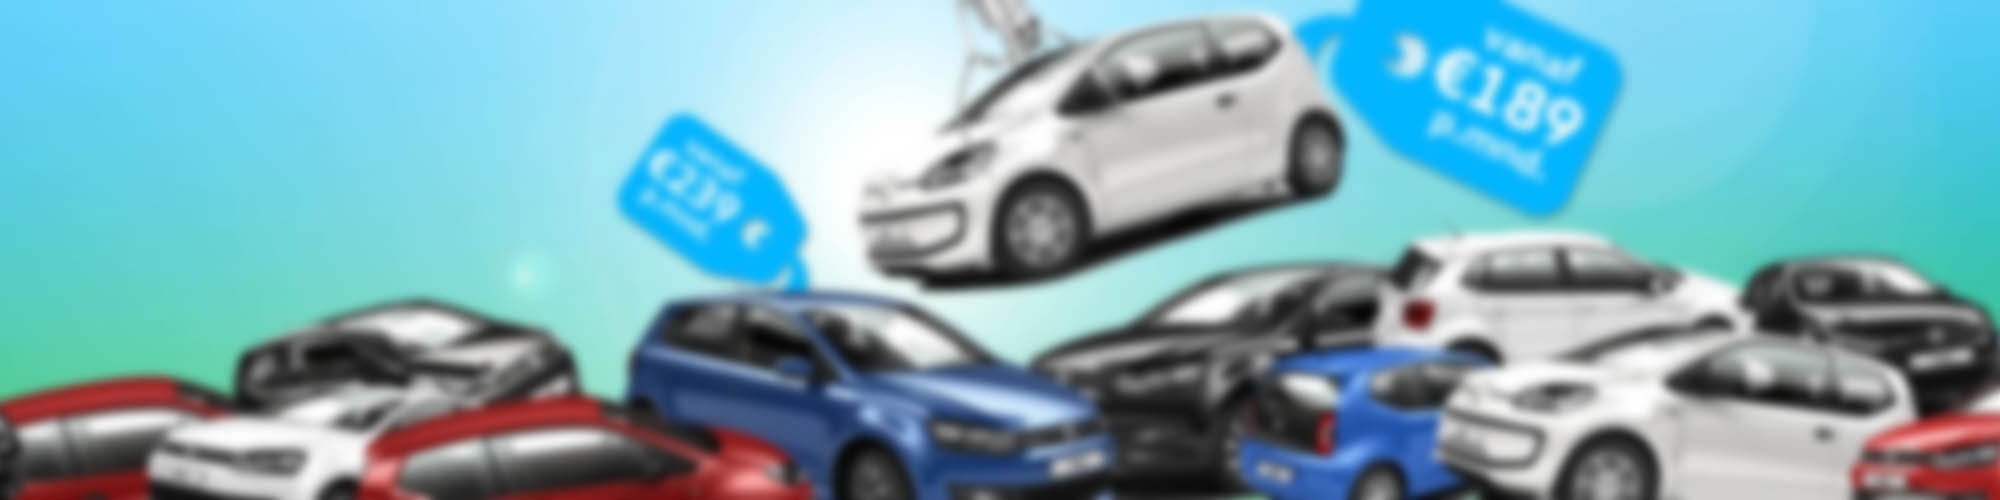 Volkswagen, Vallei Auto Groep, Prive lease, lease